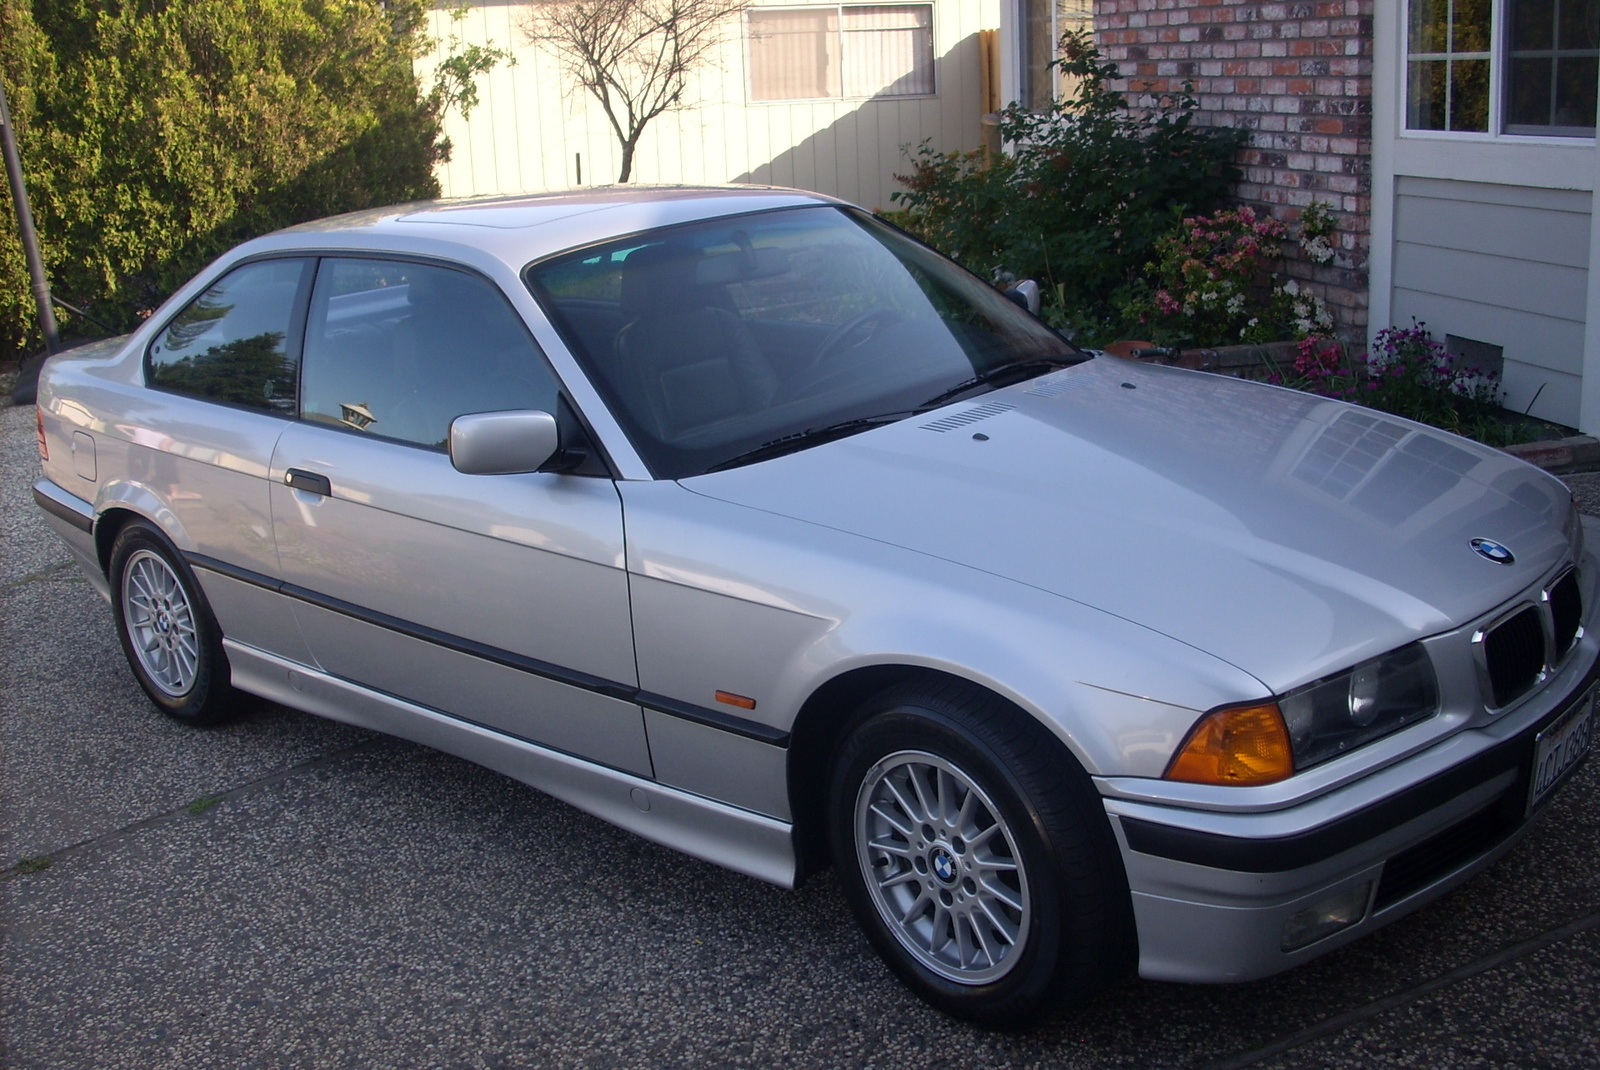 BMW 323iS 1998 photo - 3